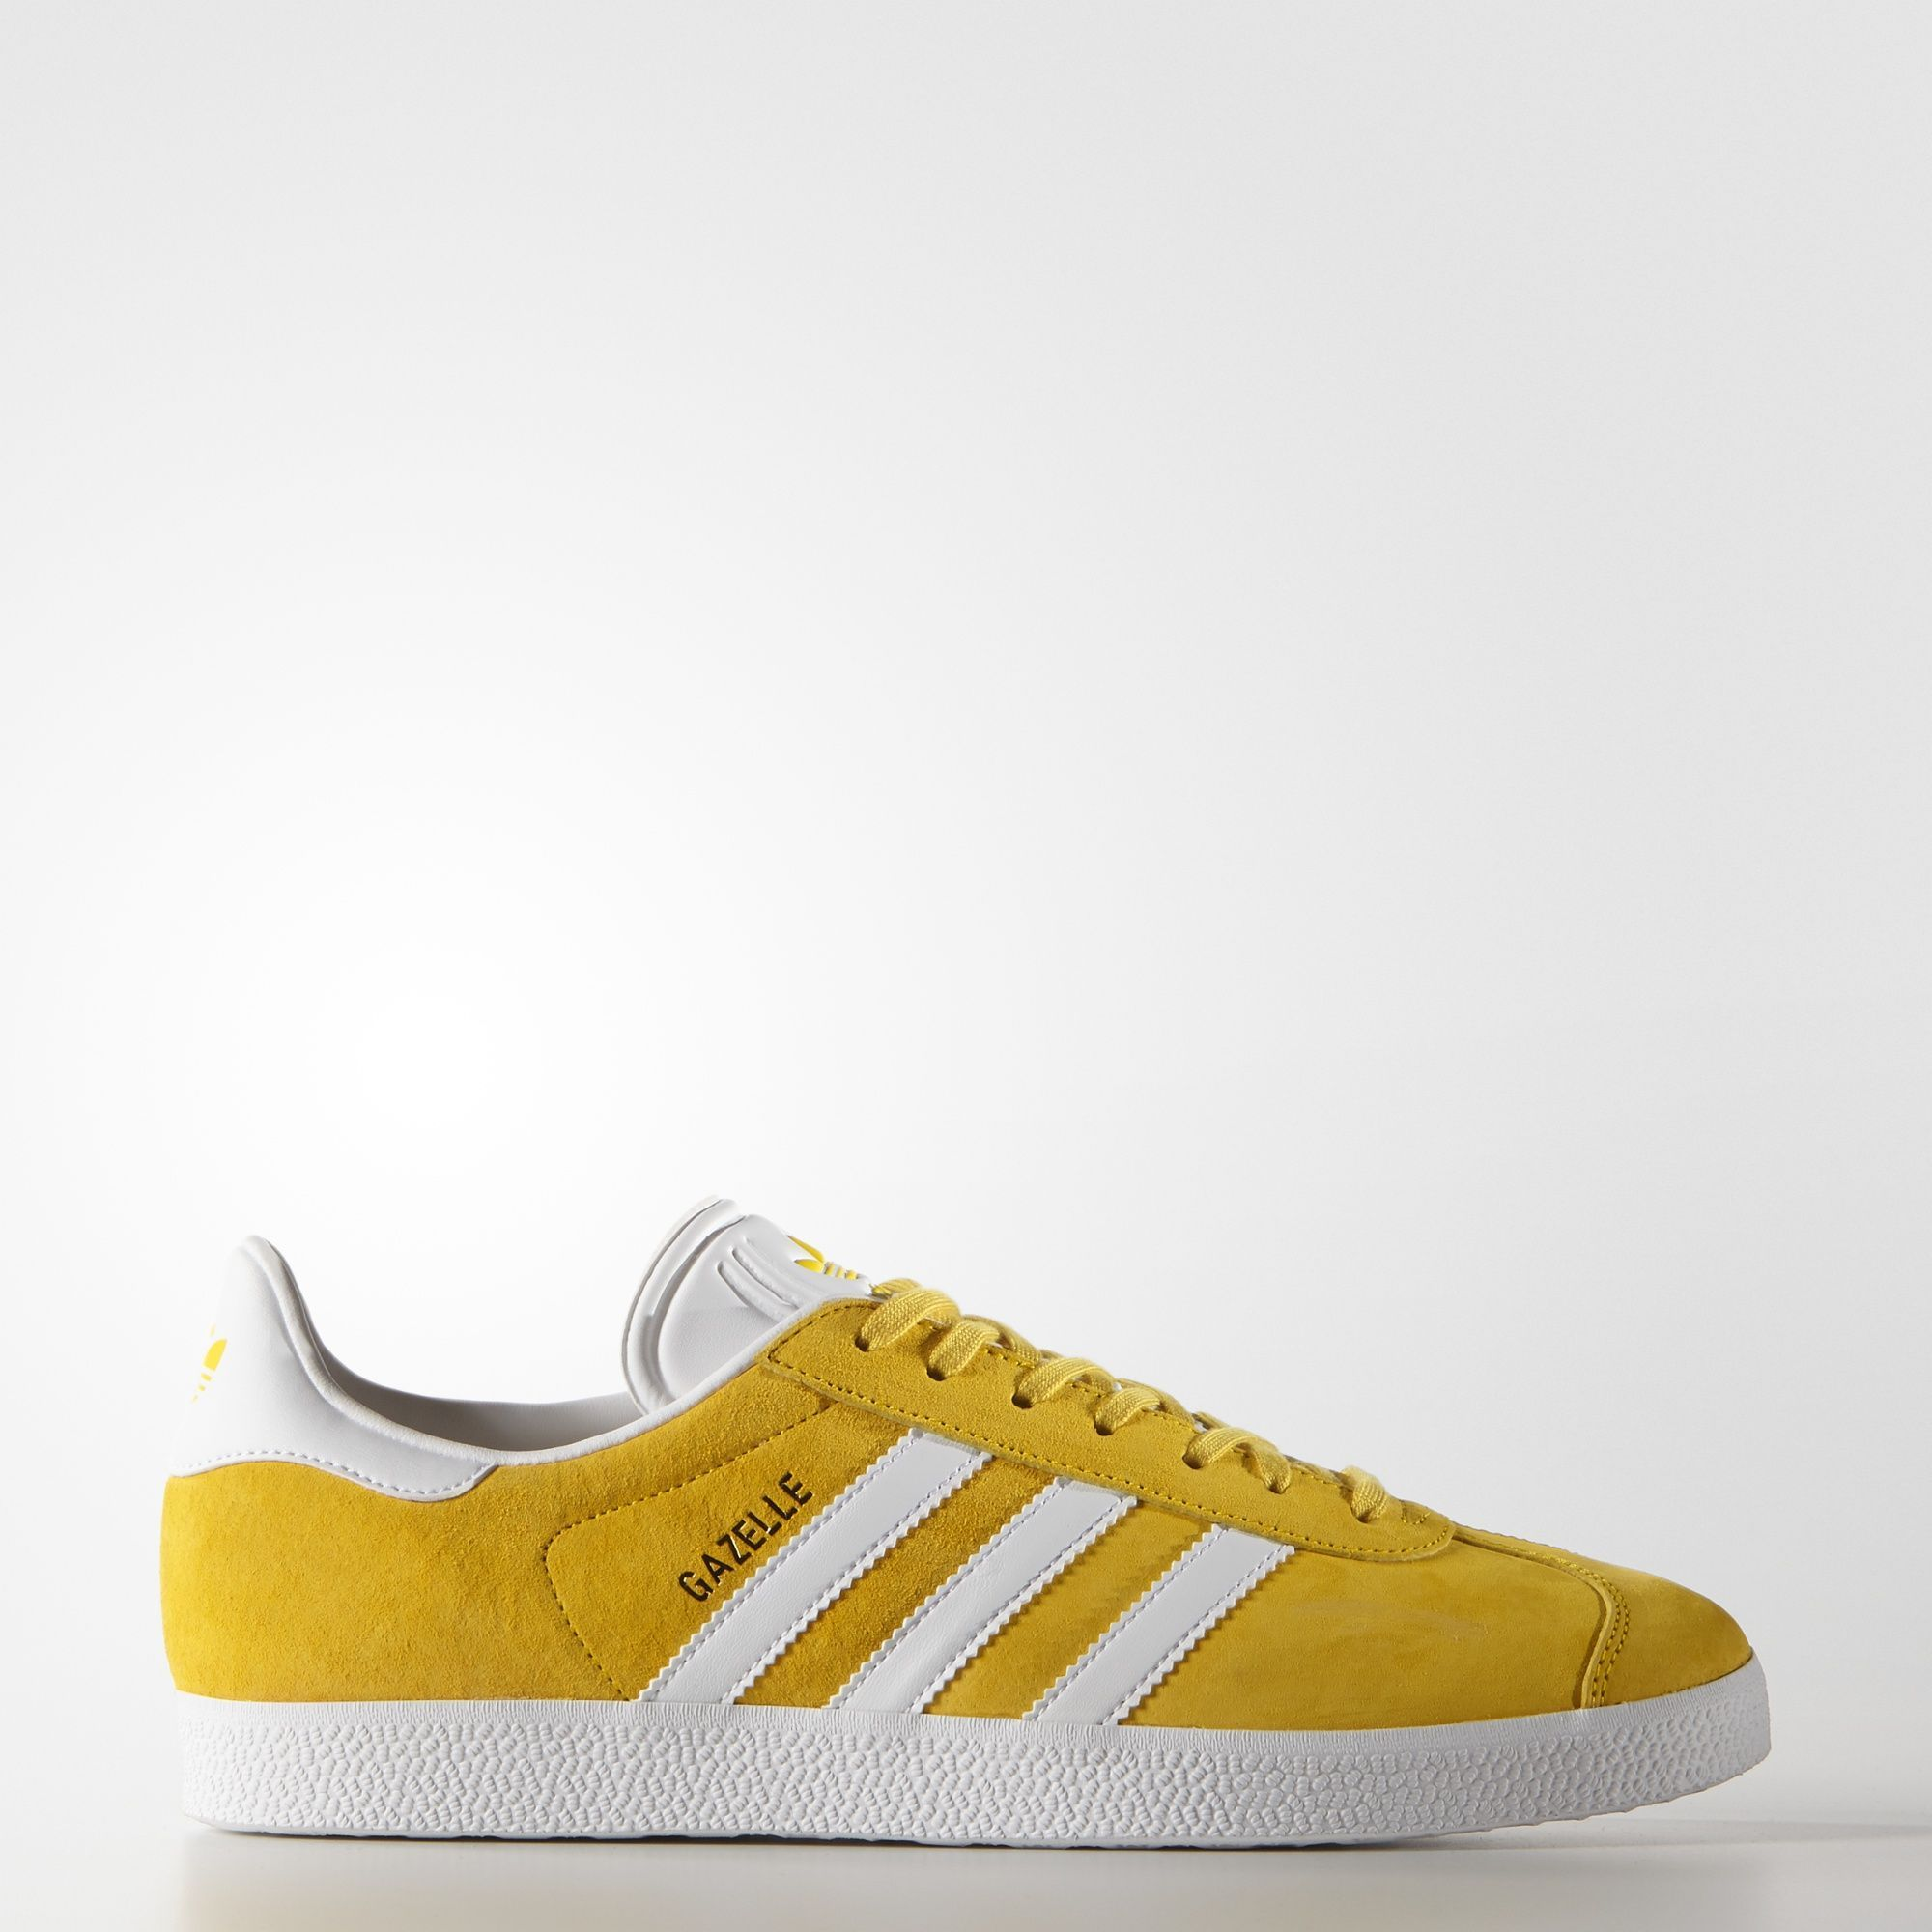 check out 78d37 bcad5 adidas - Gazelle Shoes yellow (pinned color) size 8.5